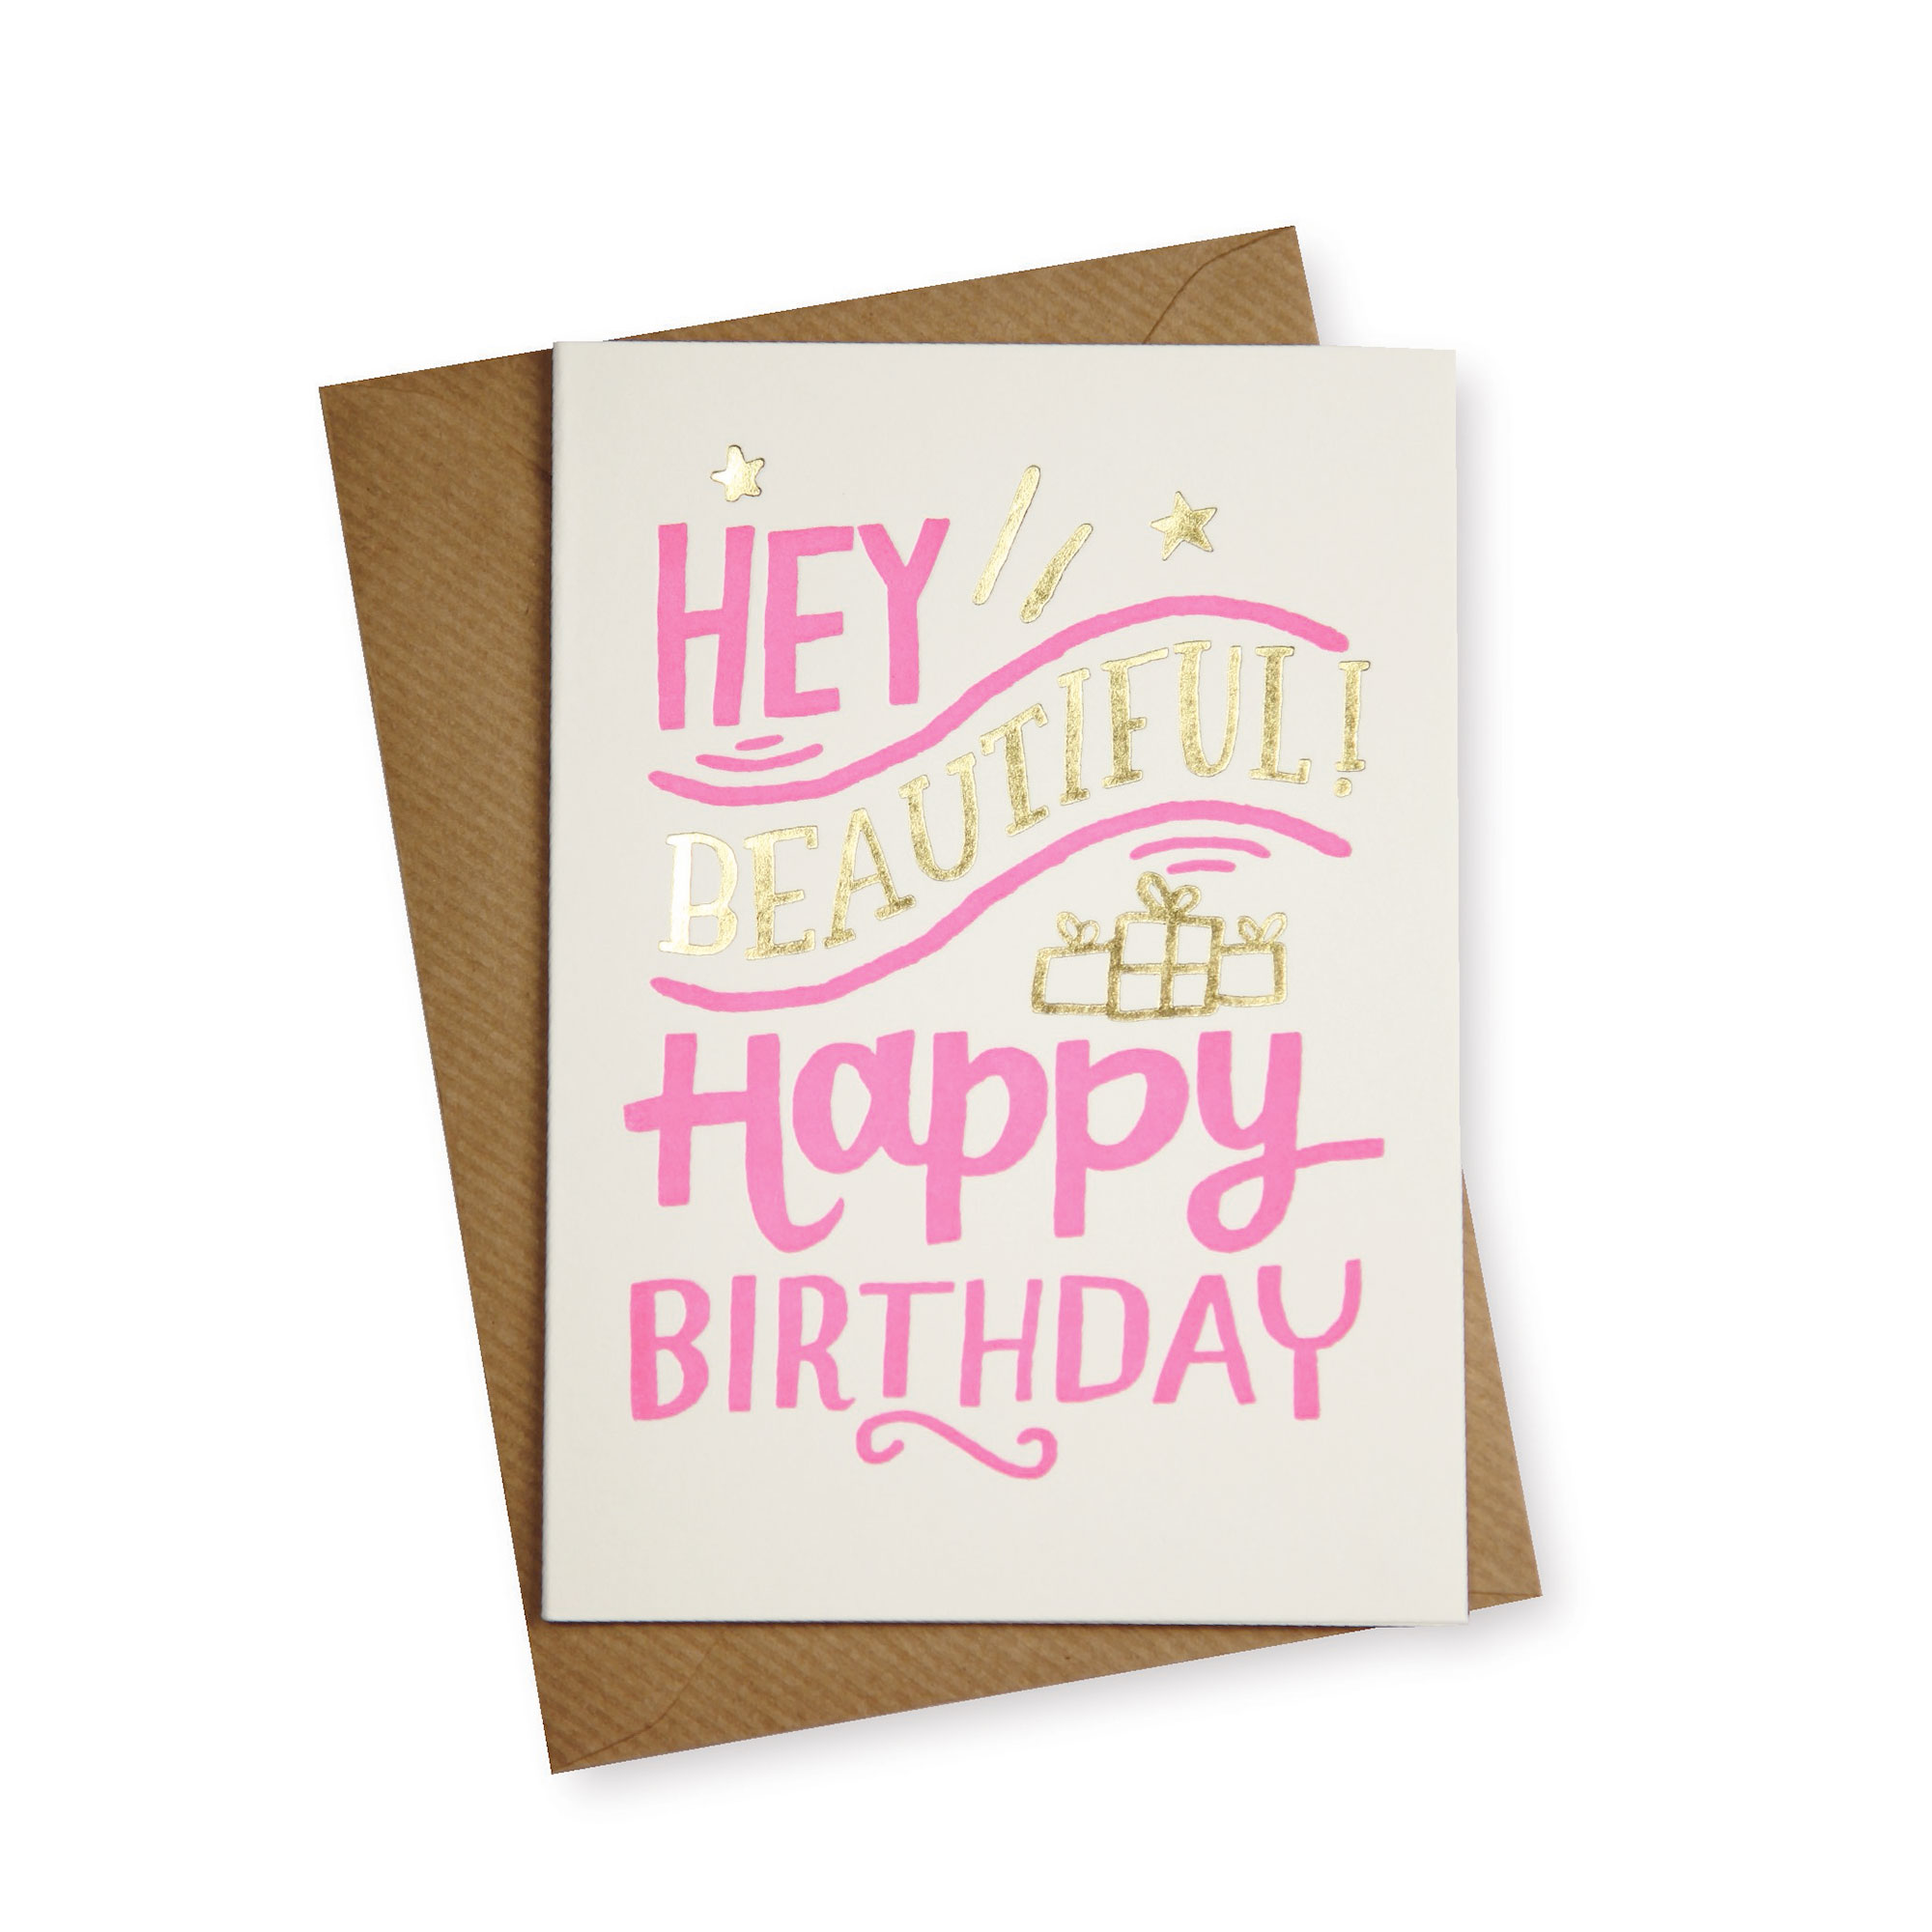 Hey Beautiful! Birthday Card | Gifts for Her | Oliver Bonas